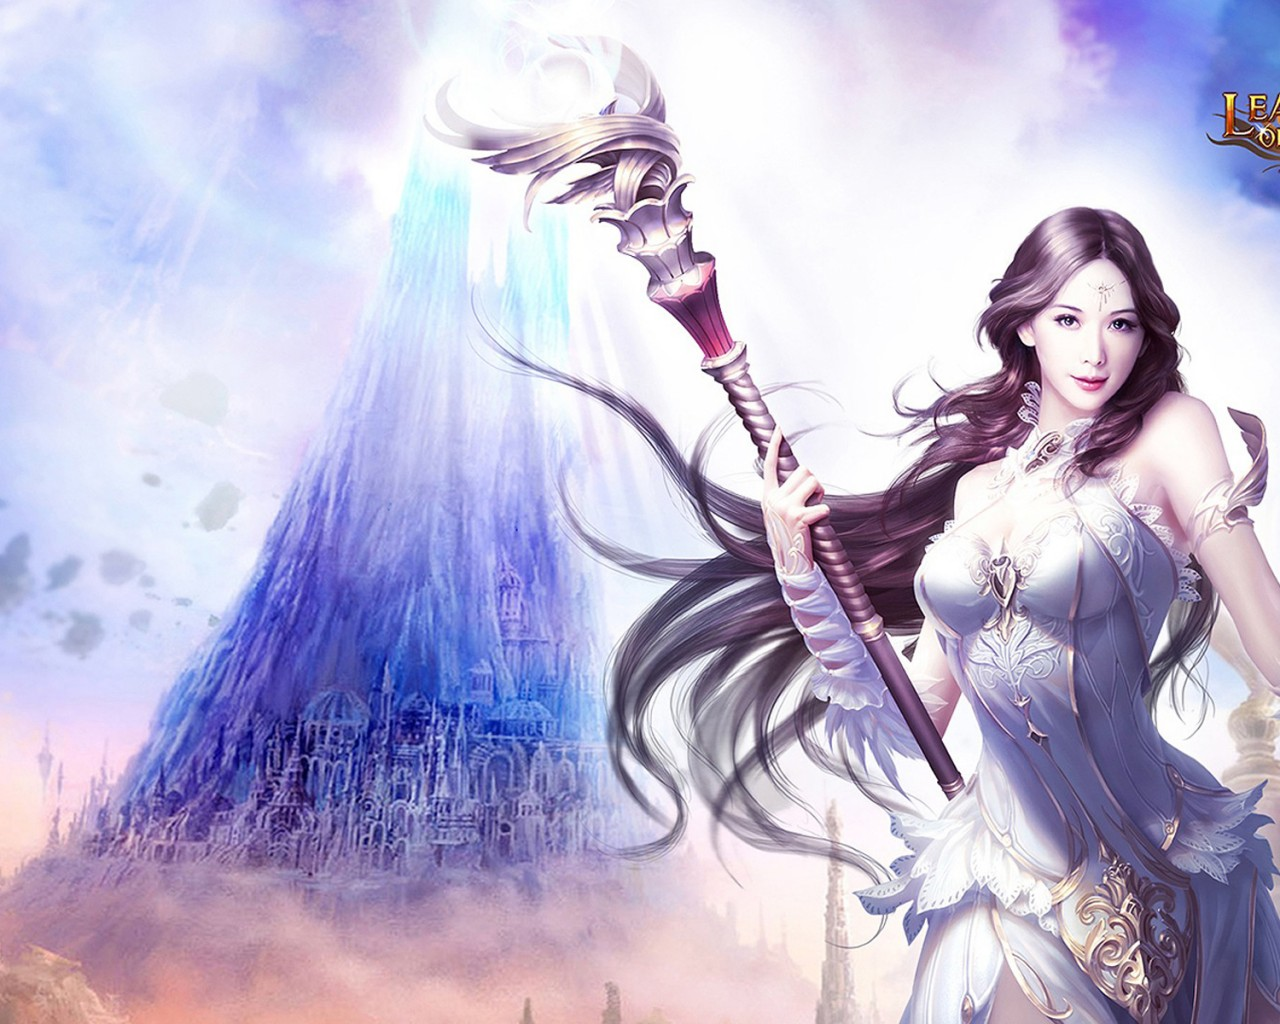 League Of Angels Loa Wallpapers Destop Backgrounds Wide Wallpapers Hd 1280x1024